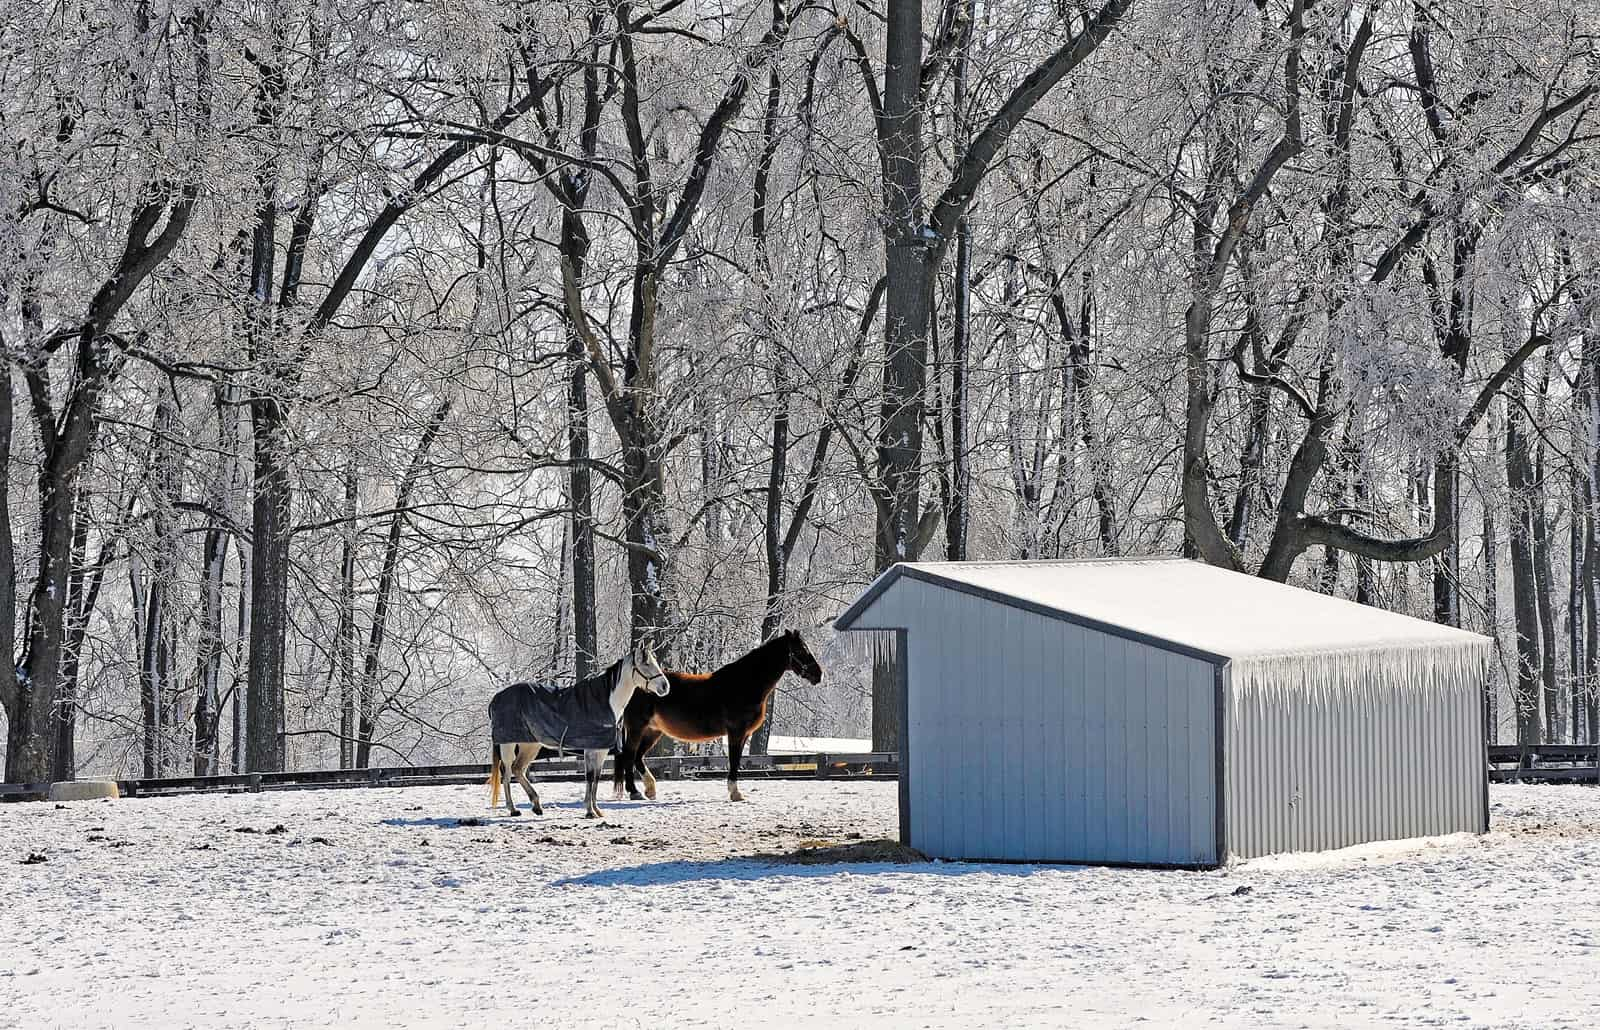 Winter Management for the Outdoor Horse